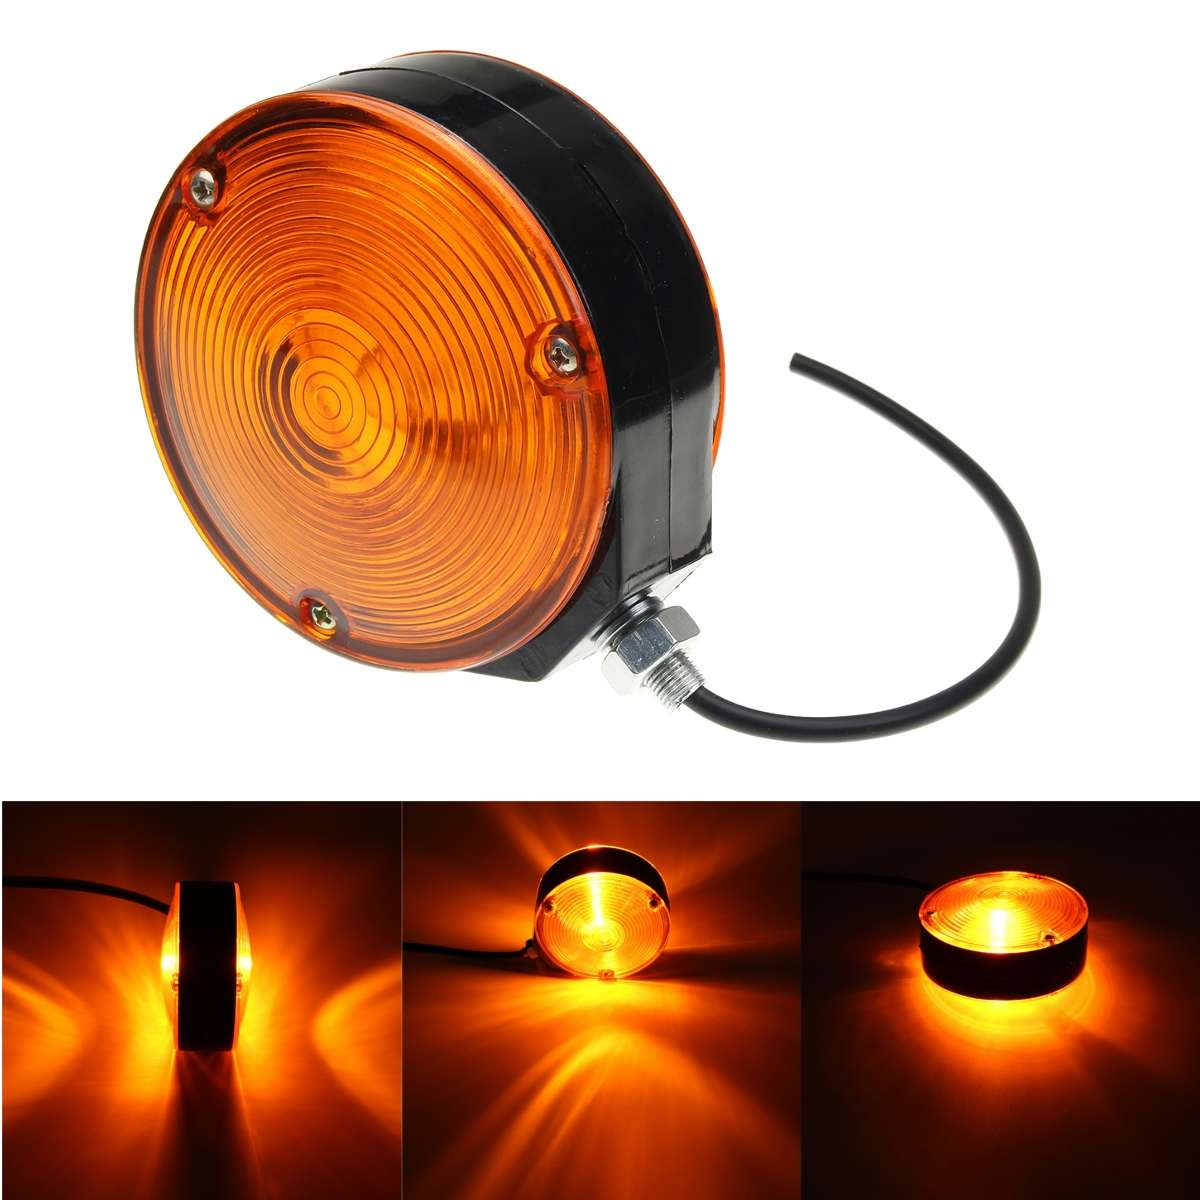 24V 10mm M10 Universal LED Clearence Indicator Side Marker Light Double Side Lamp For Truck Trailer Boat Bus Amber